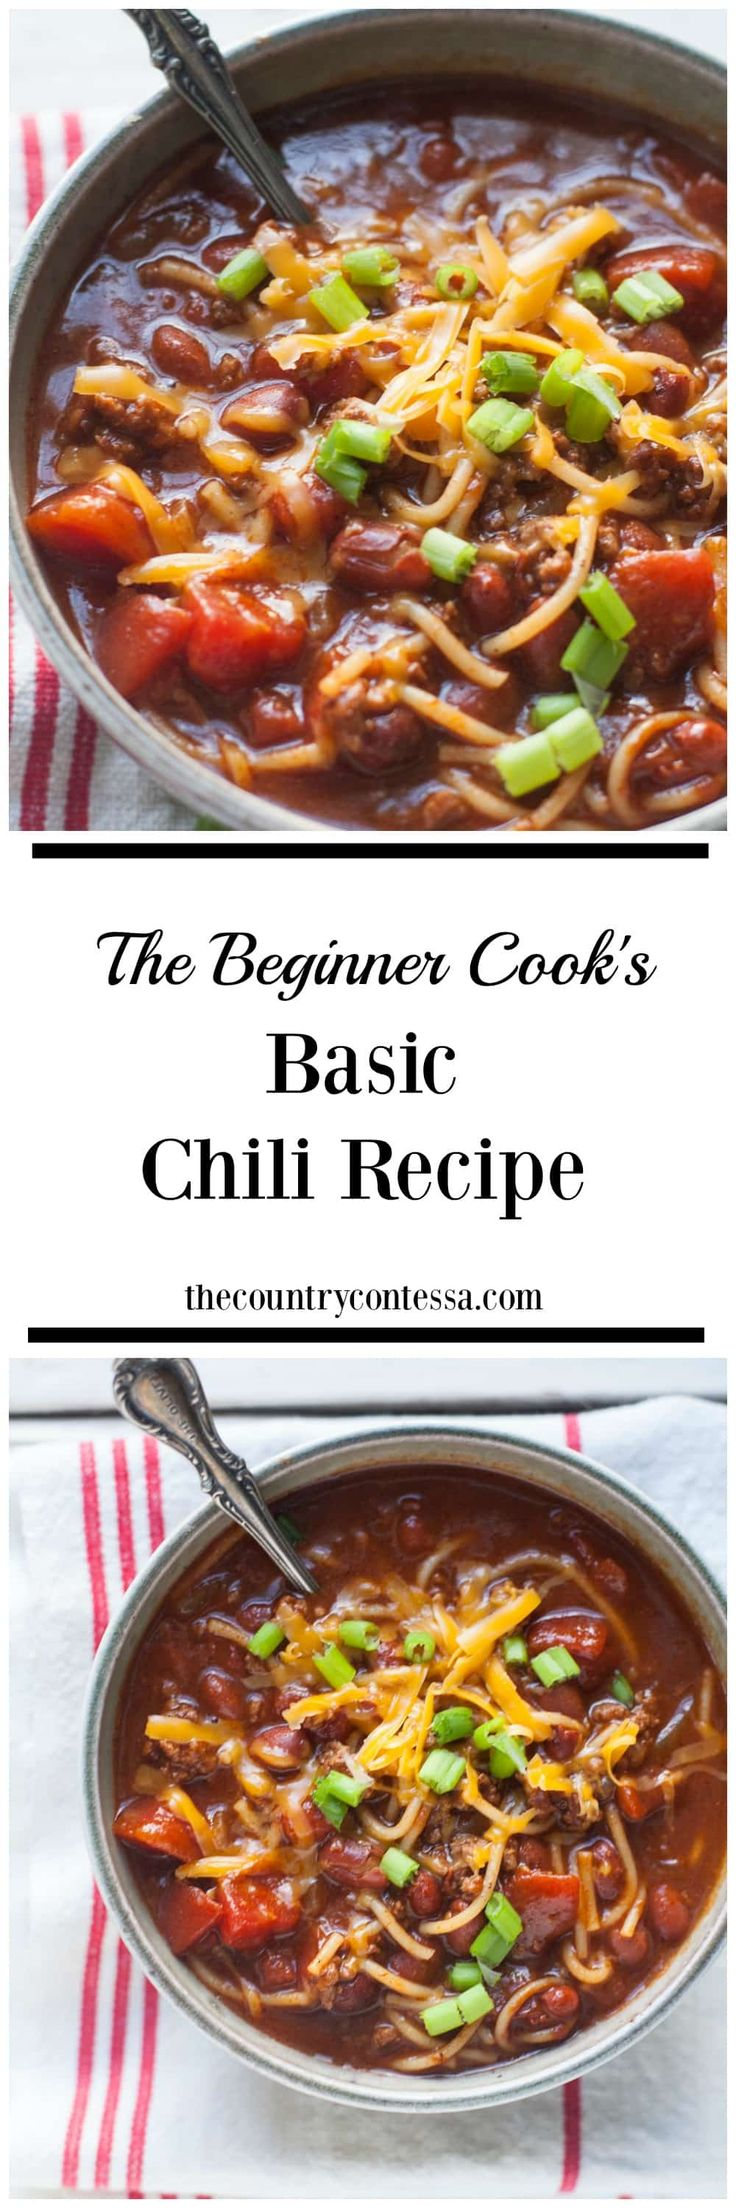 Sometimes you just need a good basic bowl of chili. Not too hot, and not too many fancy ingredients. This easy southern chili recipe is guaranteed to deliver it all.  via @contessa_cooks